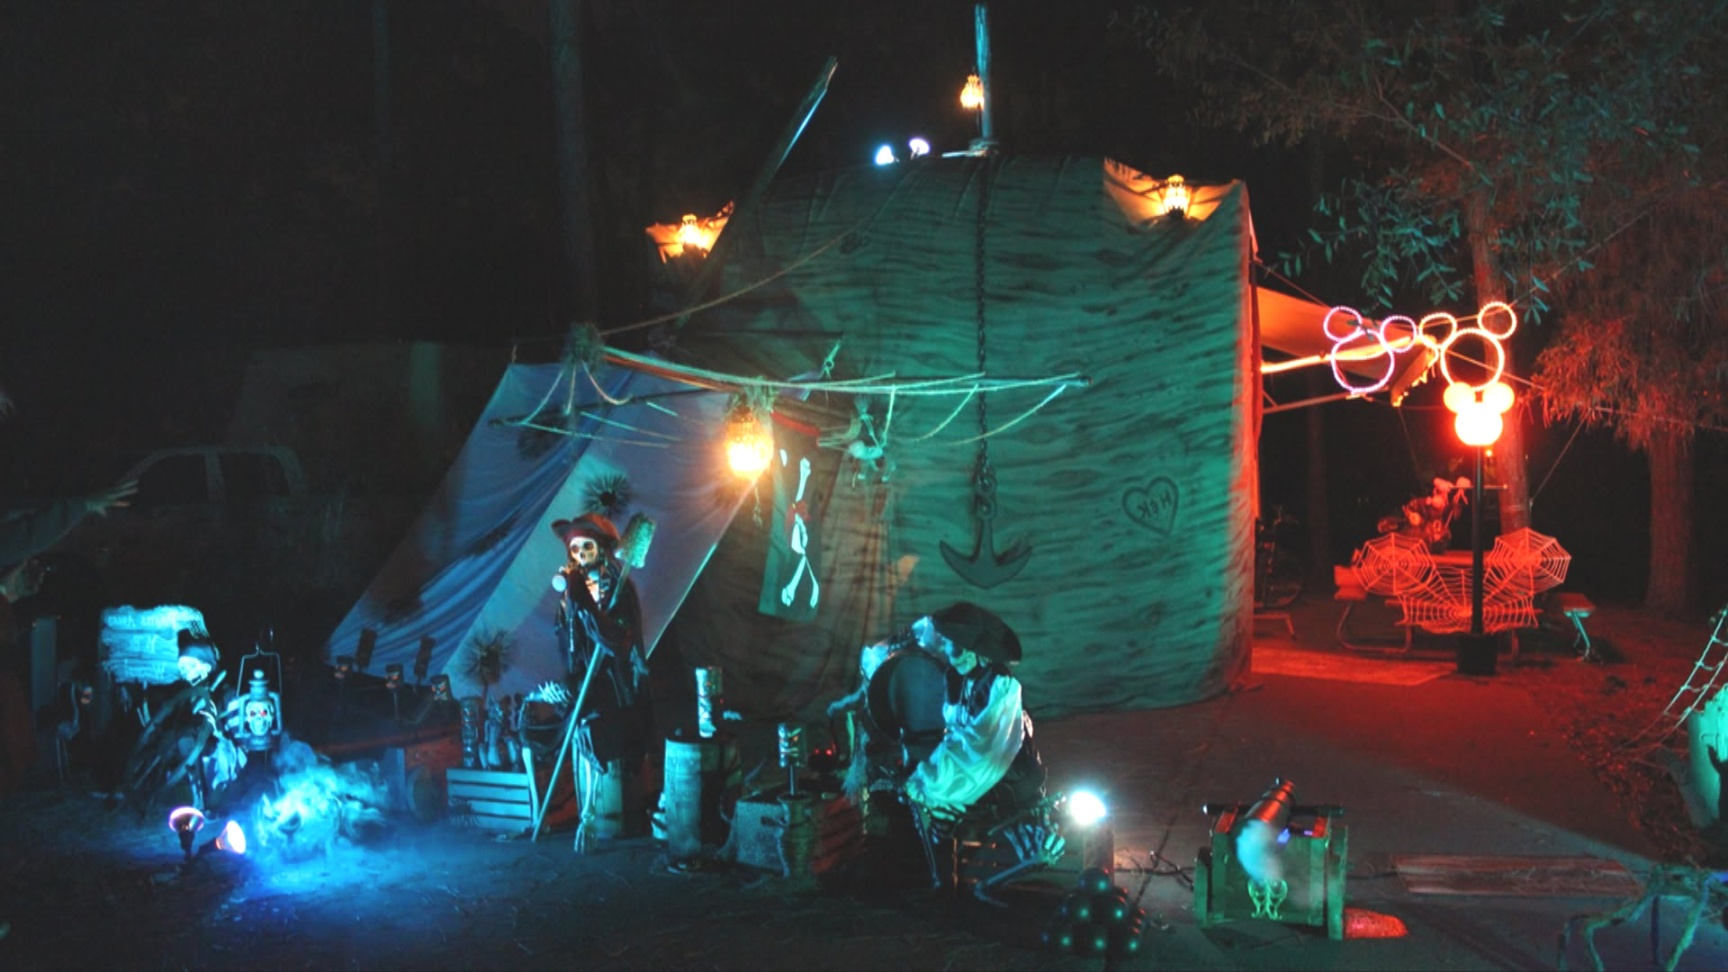 pirate themed halloween decorations | Fort Wilderness Halloween Site Decoration 2012 Winner, Walt Disney ..